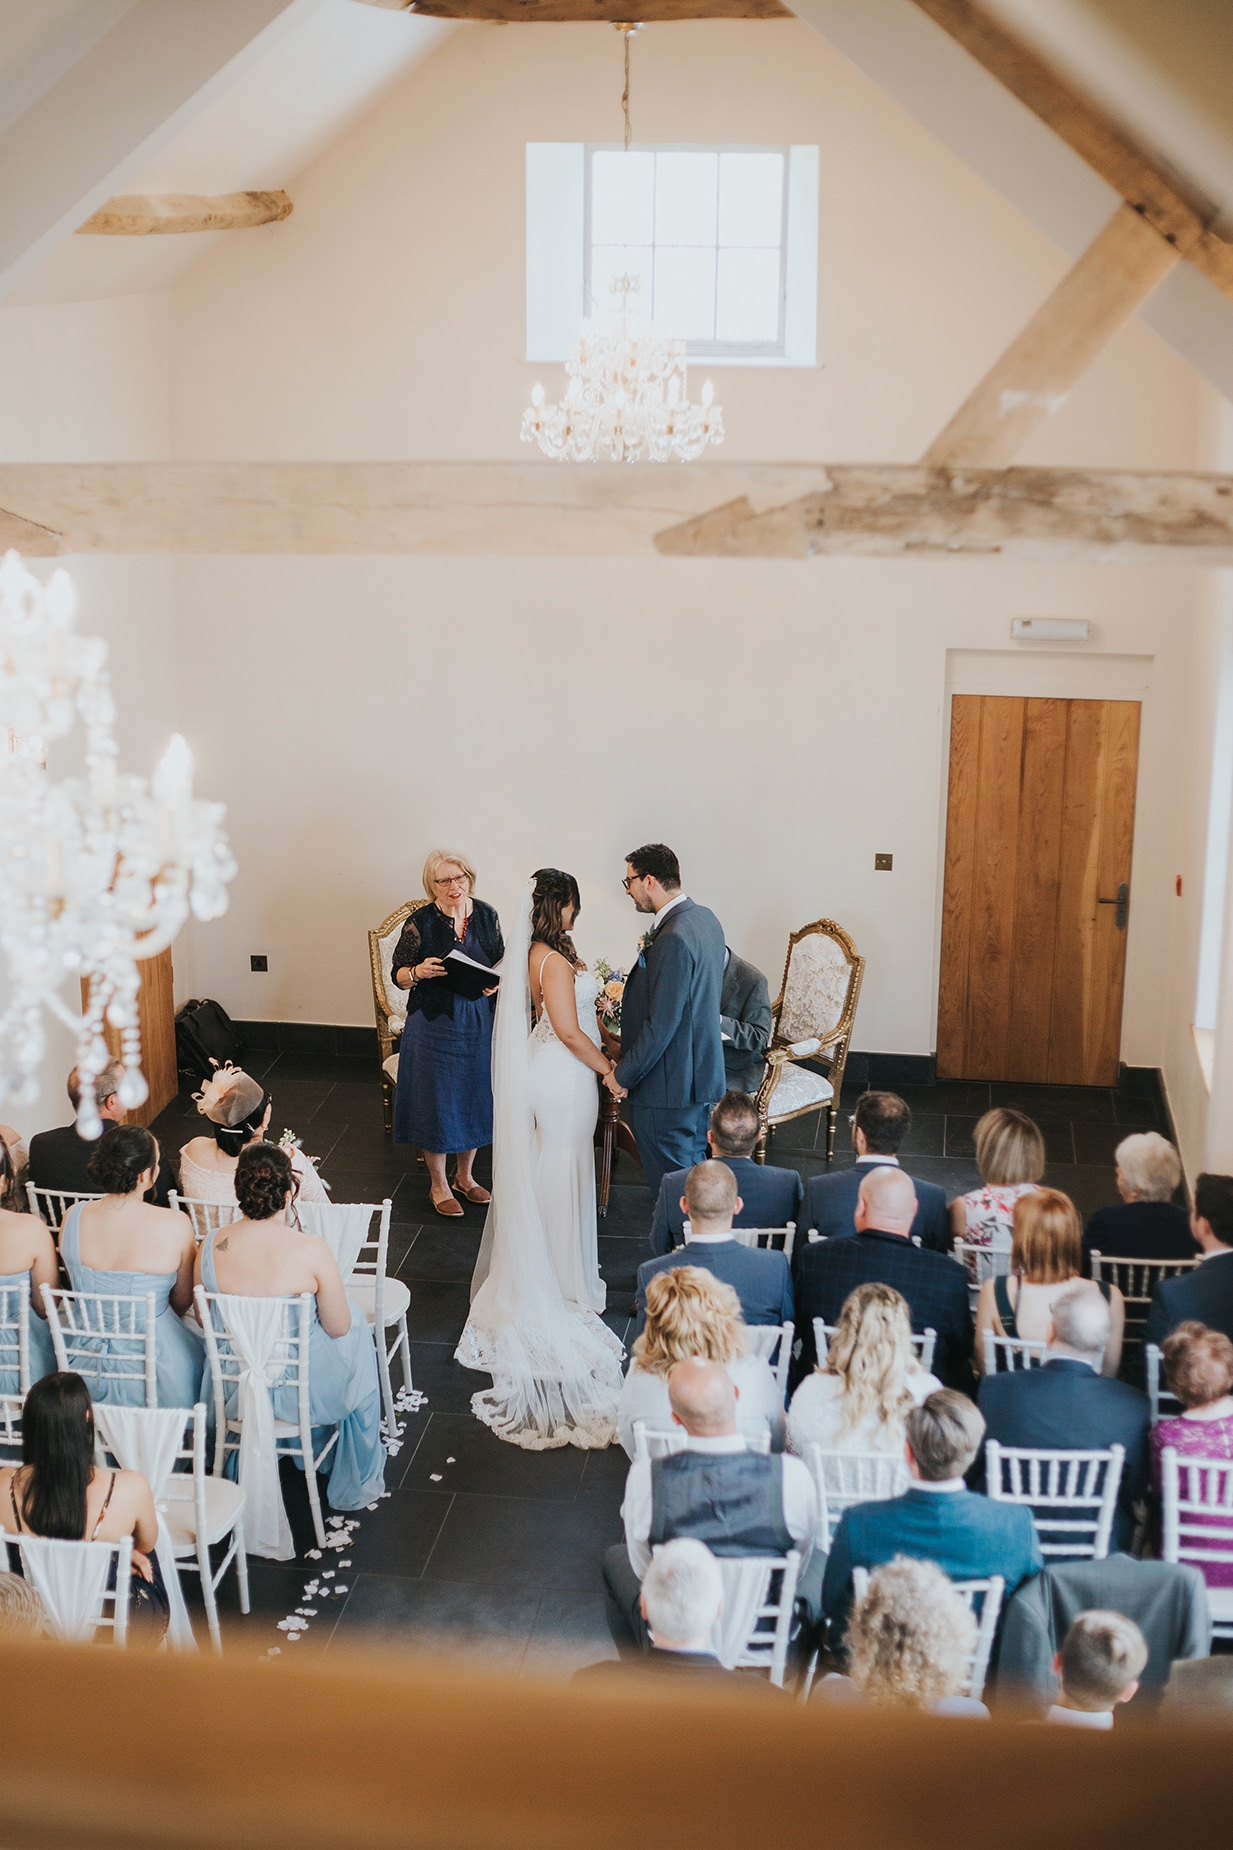 Wedding Ceremony Photography at Lemore Manor in Hereford